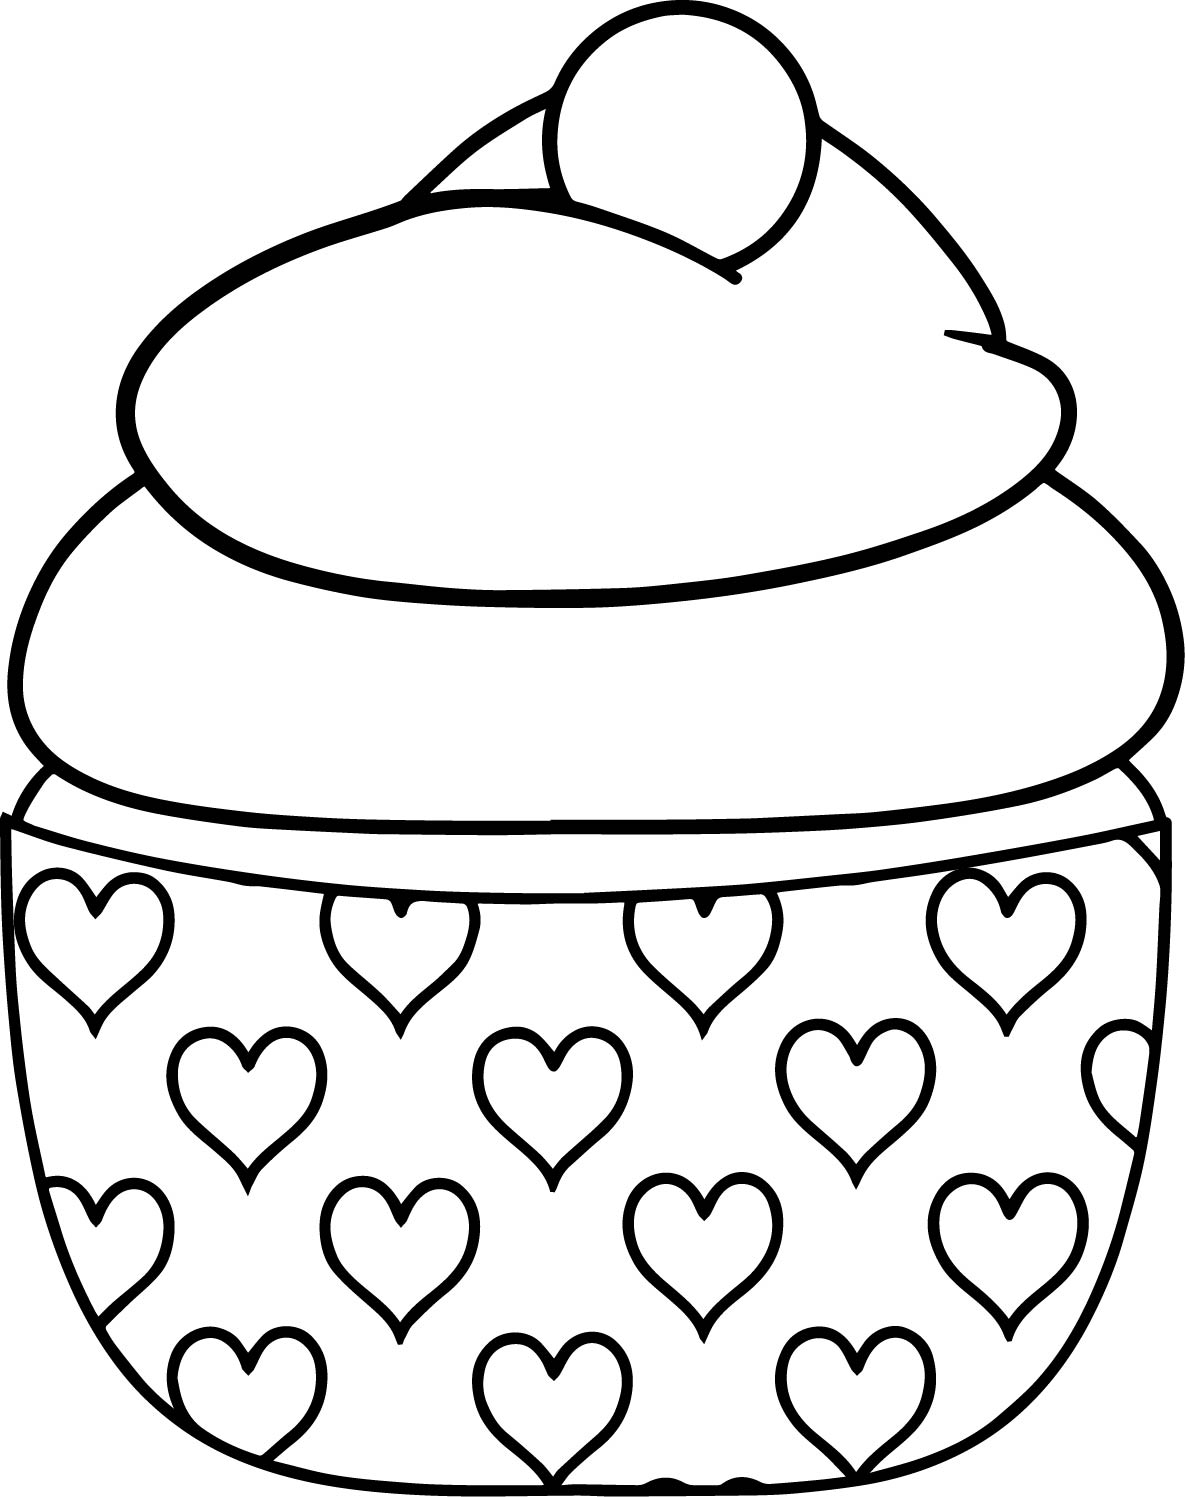 Hearts With Flames Coloring Pages | Free download best Hearts With ...